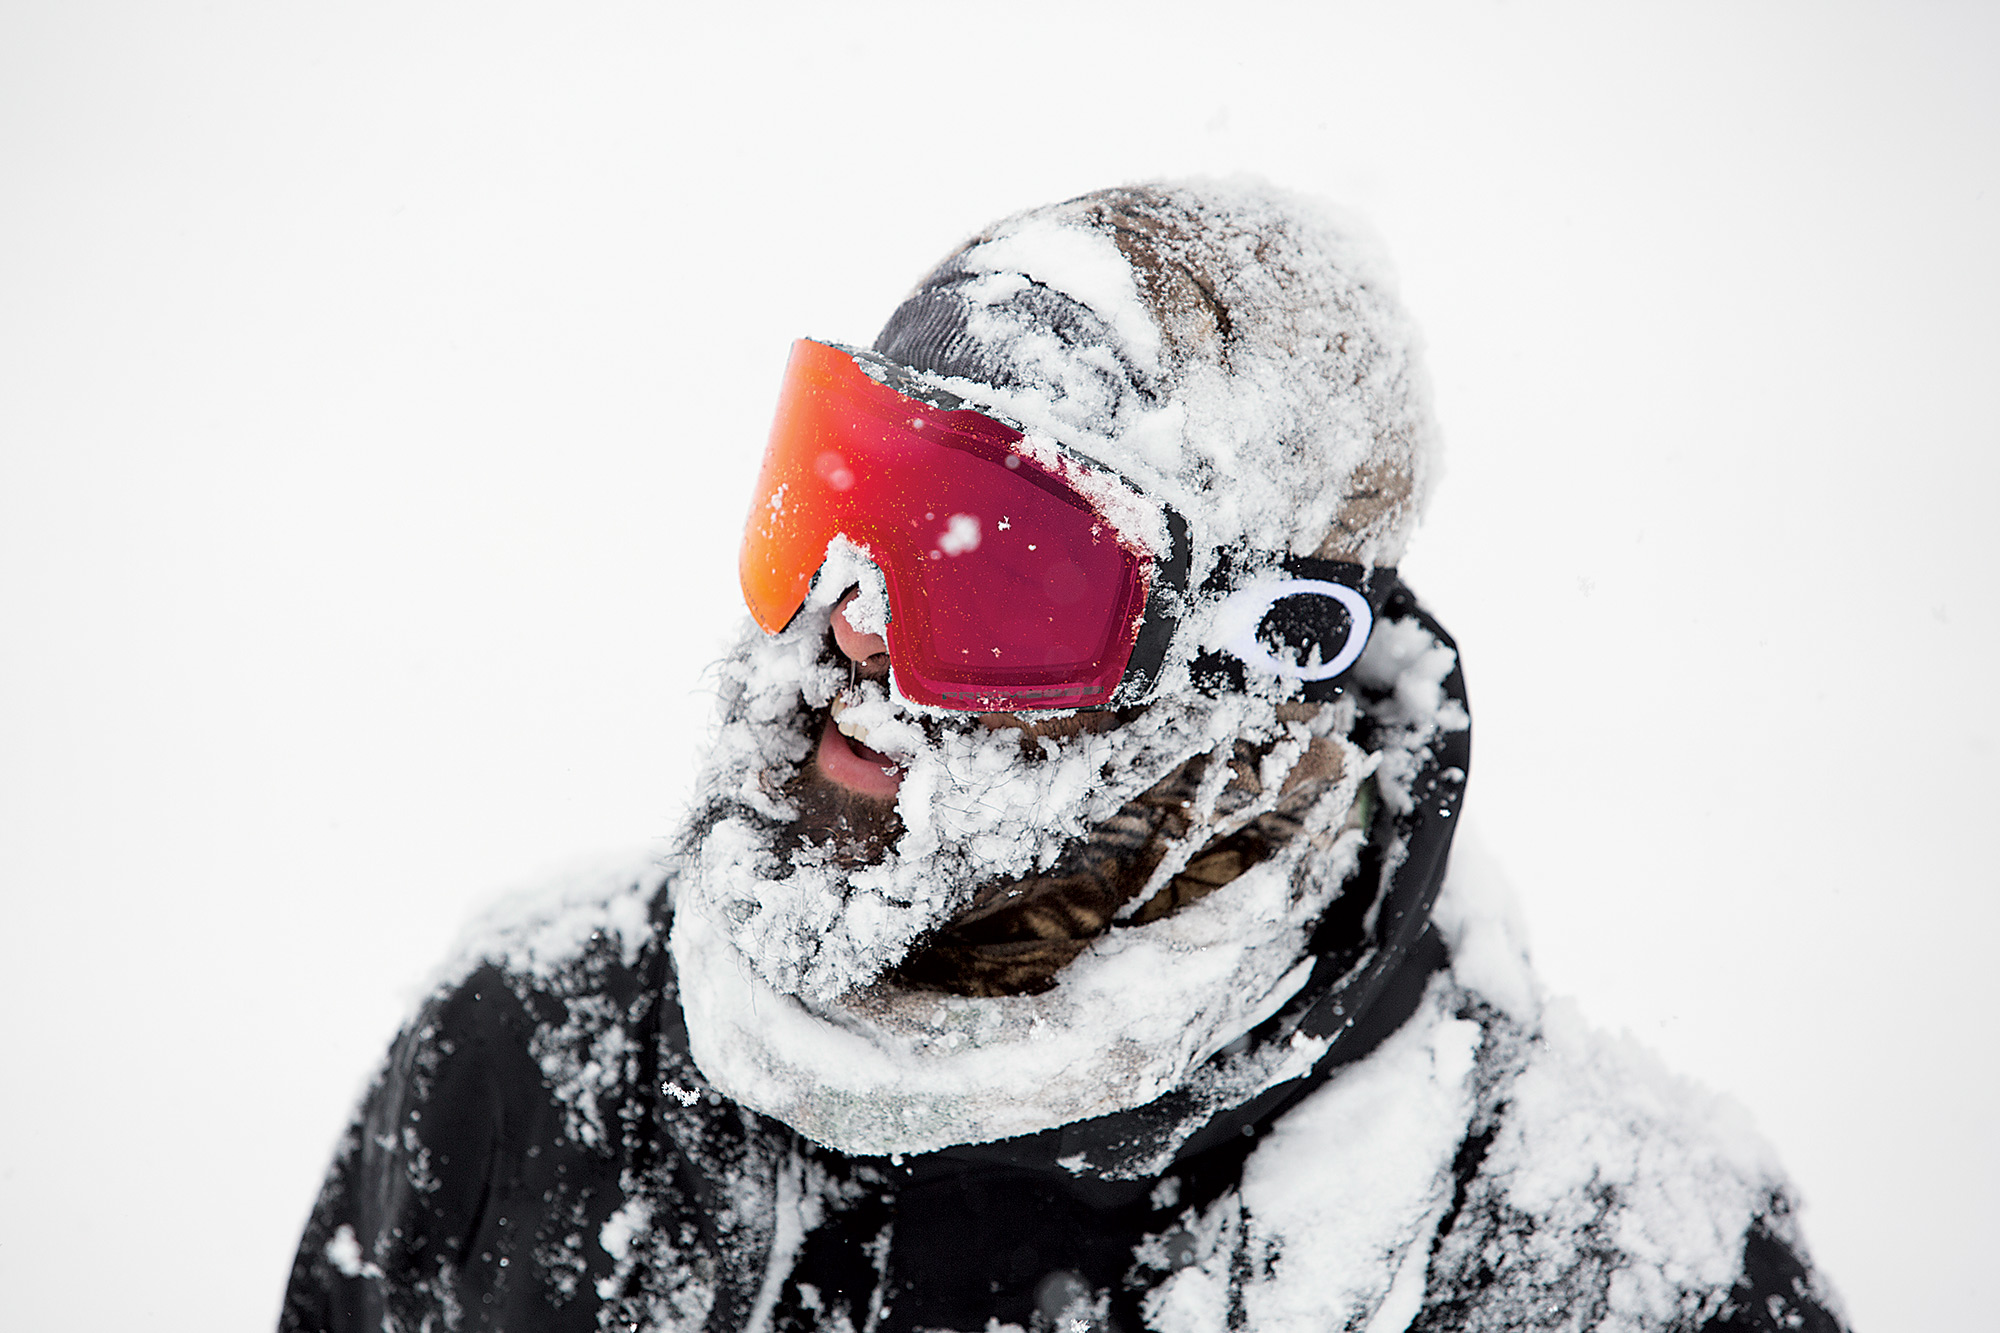 43fc484d4 Snowboarder Goggle Exam 2019—Oakley Fall Line XL with Prizm React ...